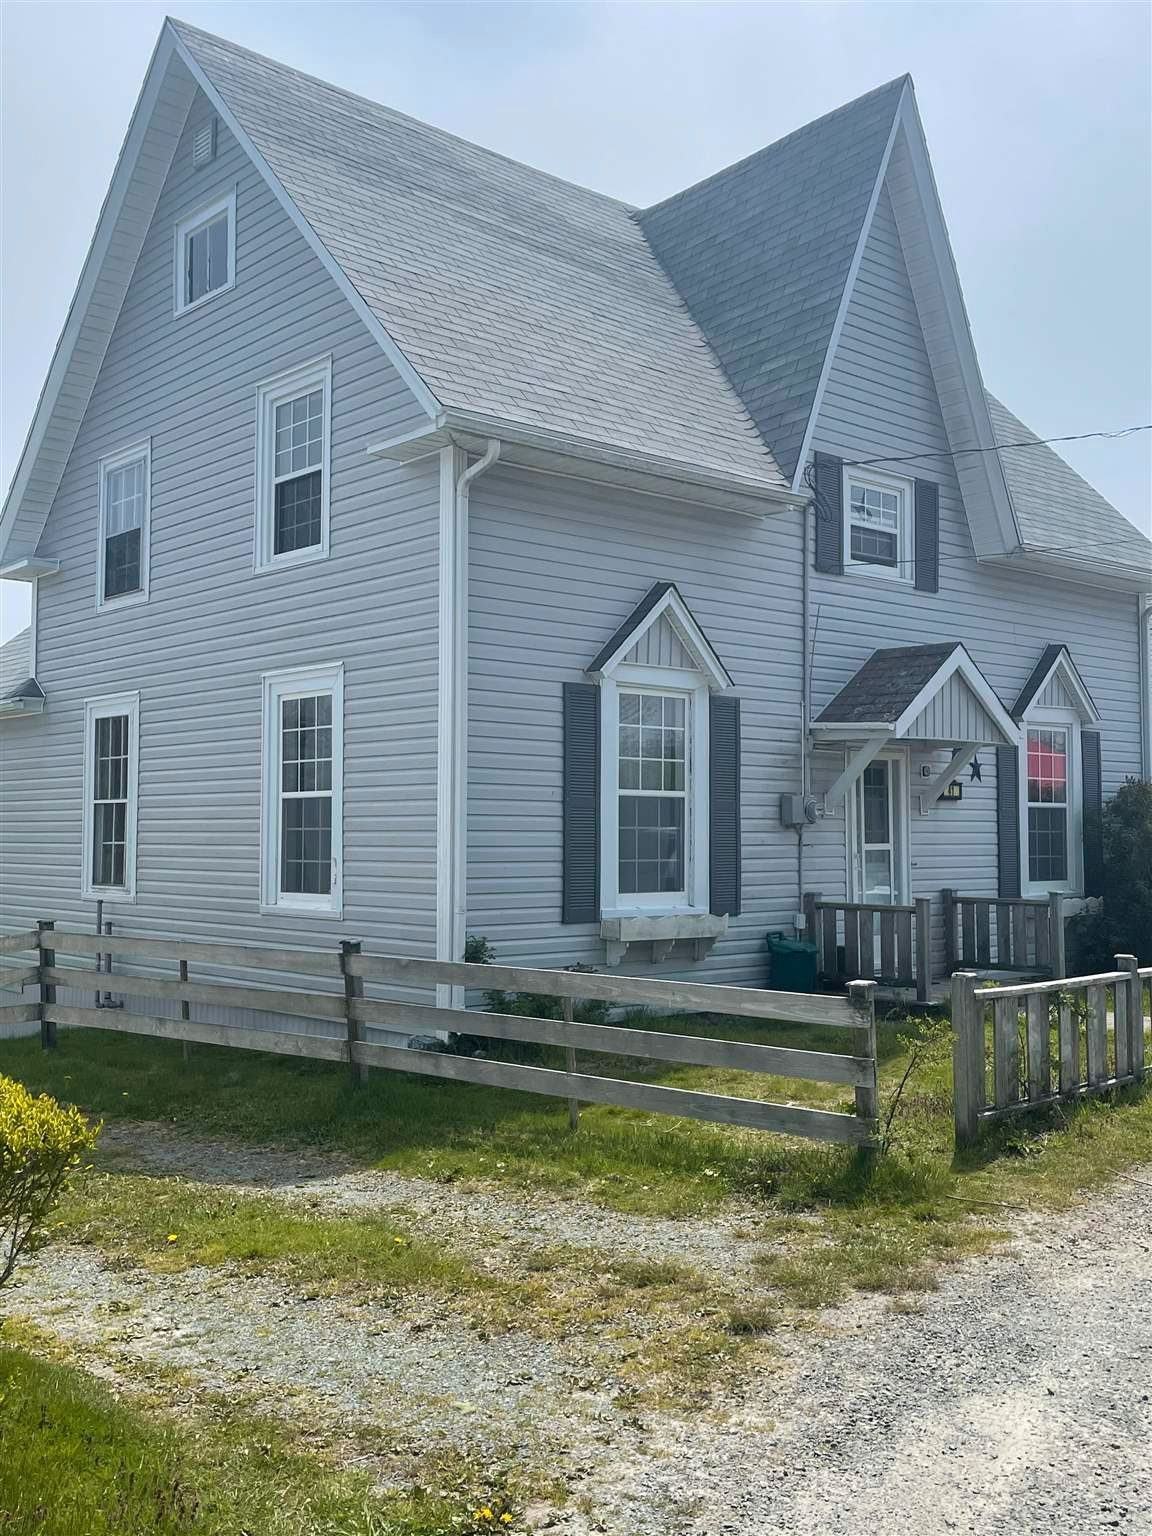 Main Photo: 41 Church Street in Lockeport: 407-Shelburne County Residential for sale (South Shore)  : MLS®# 202112625